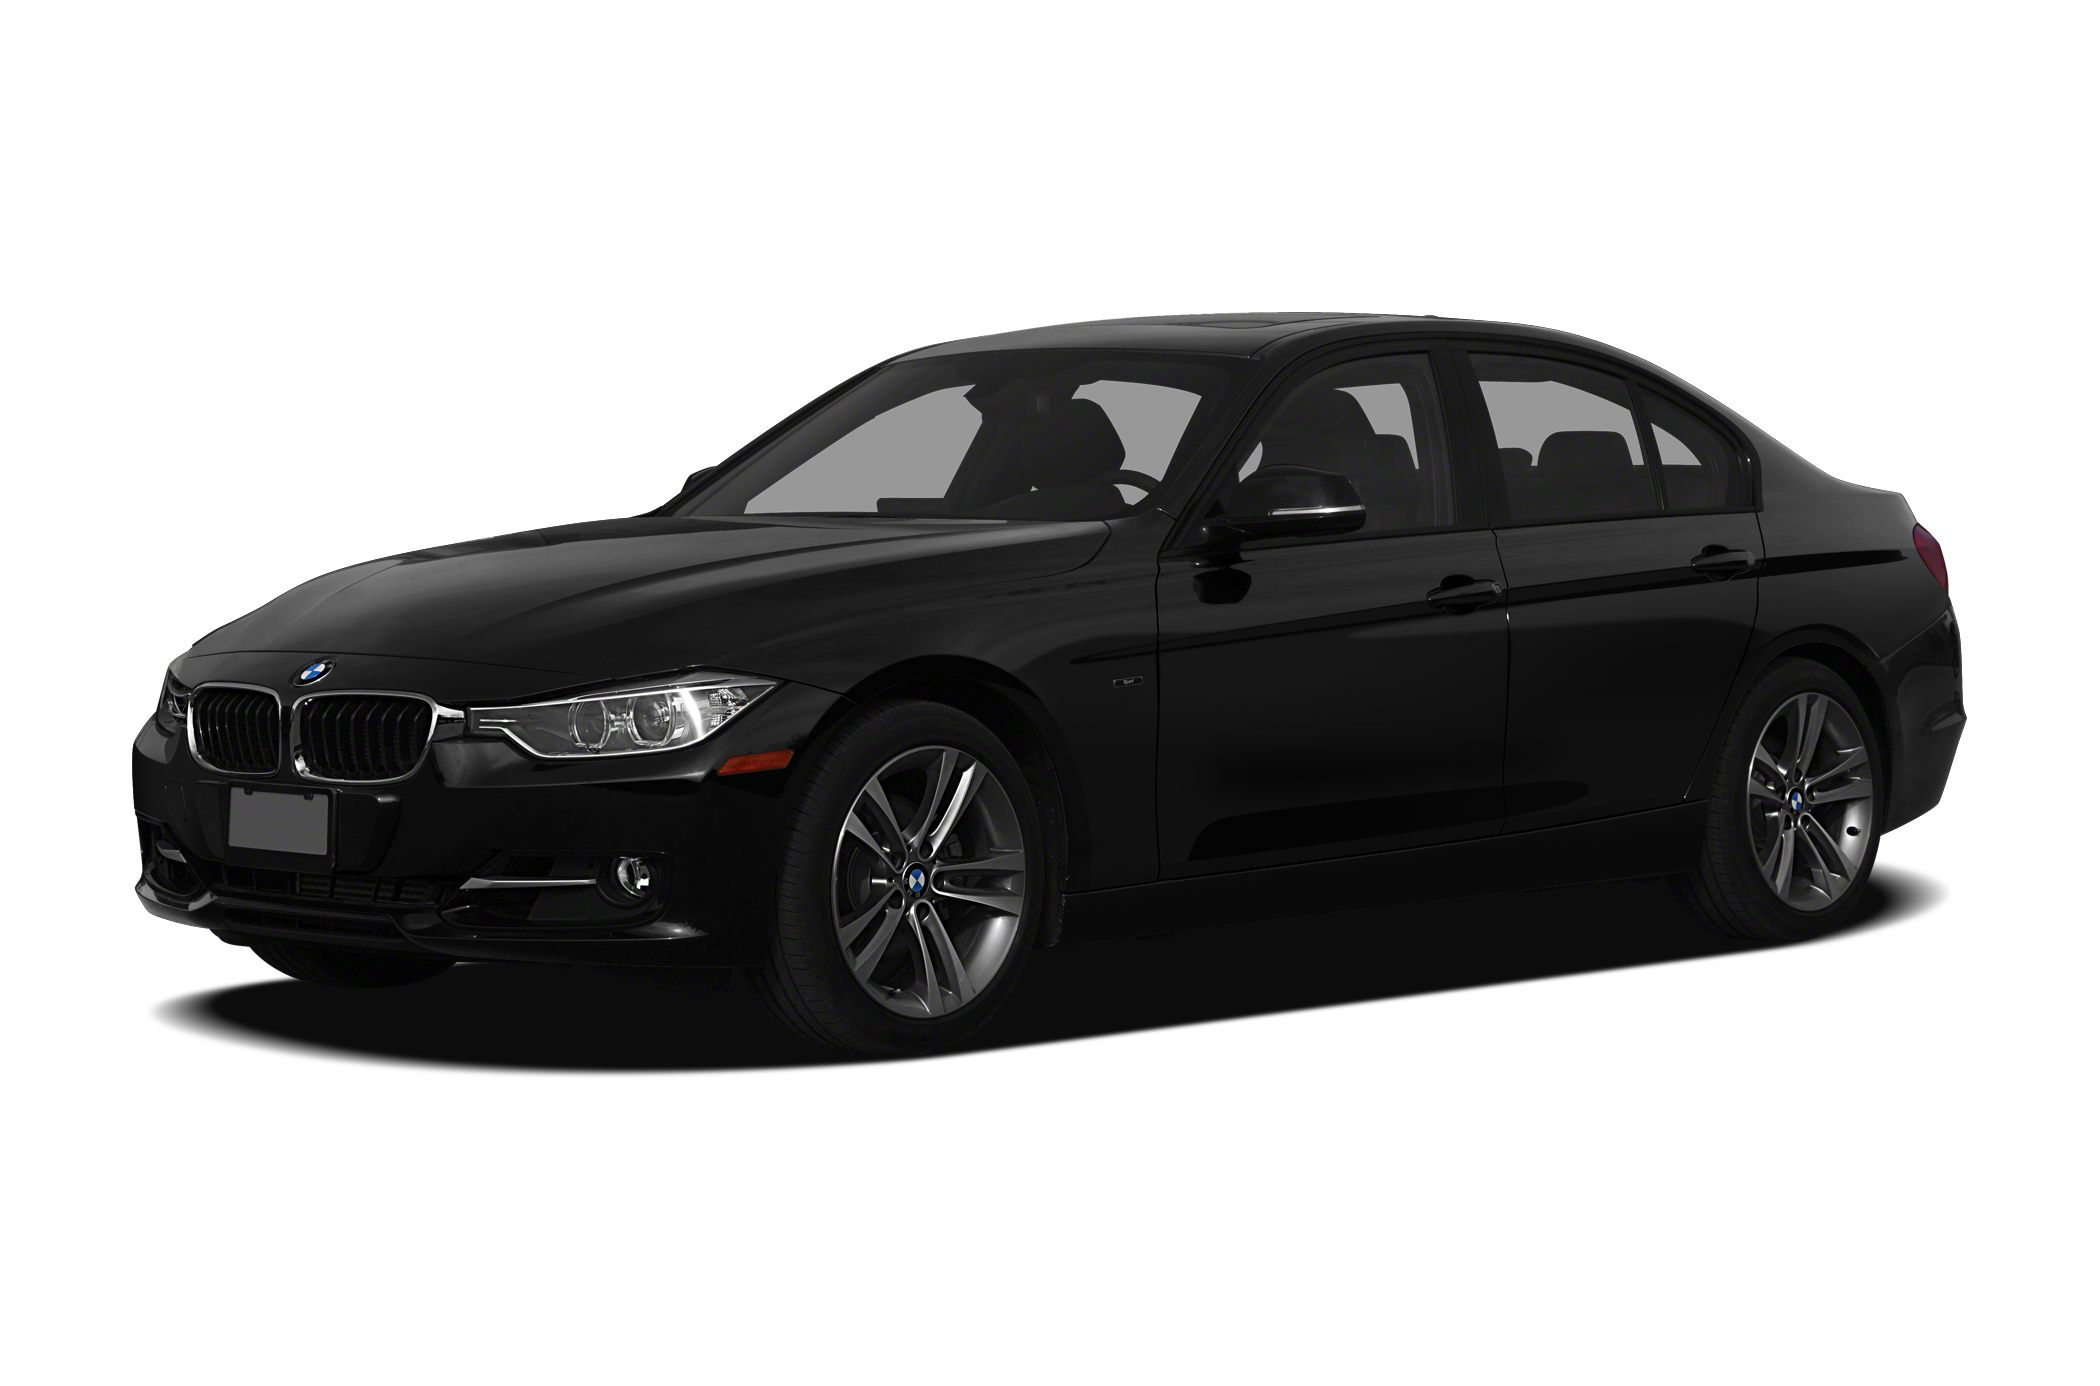 2012 BMW 3 Series 328i This 2012 BMW 3 Series 4dr 328i features a 20L 4 CYLINDER 4cyl Gasoline en